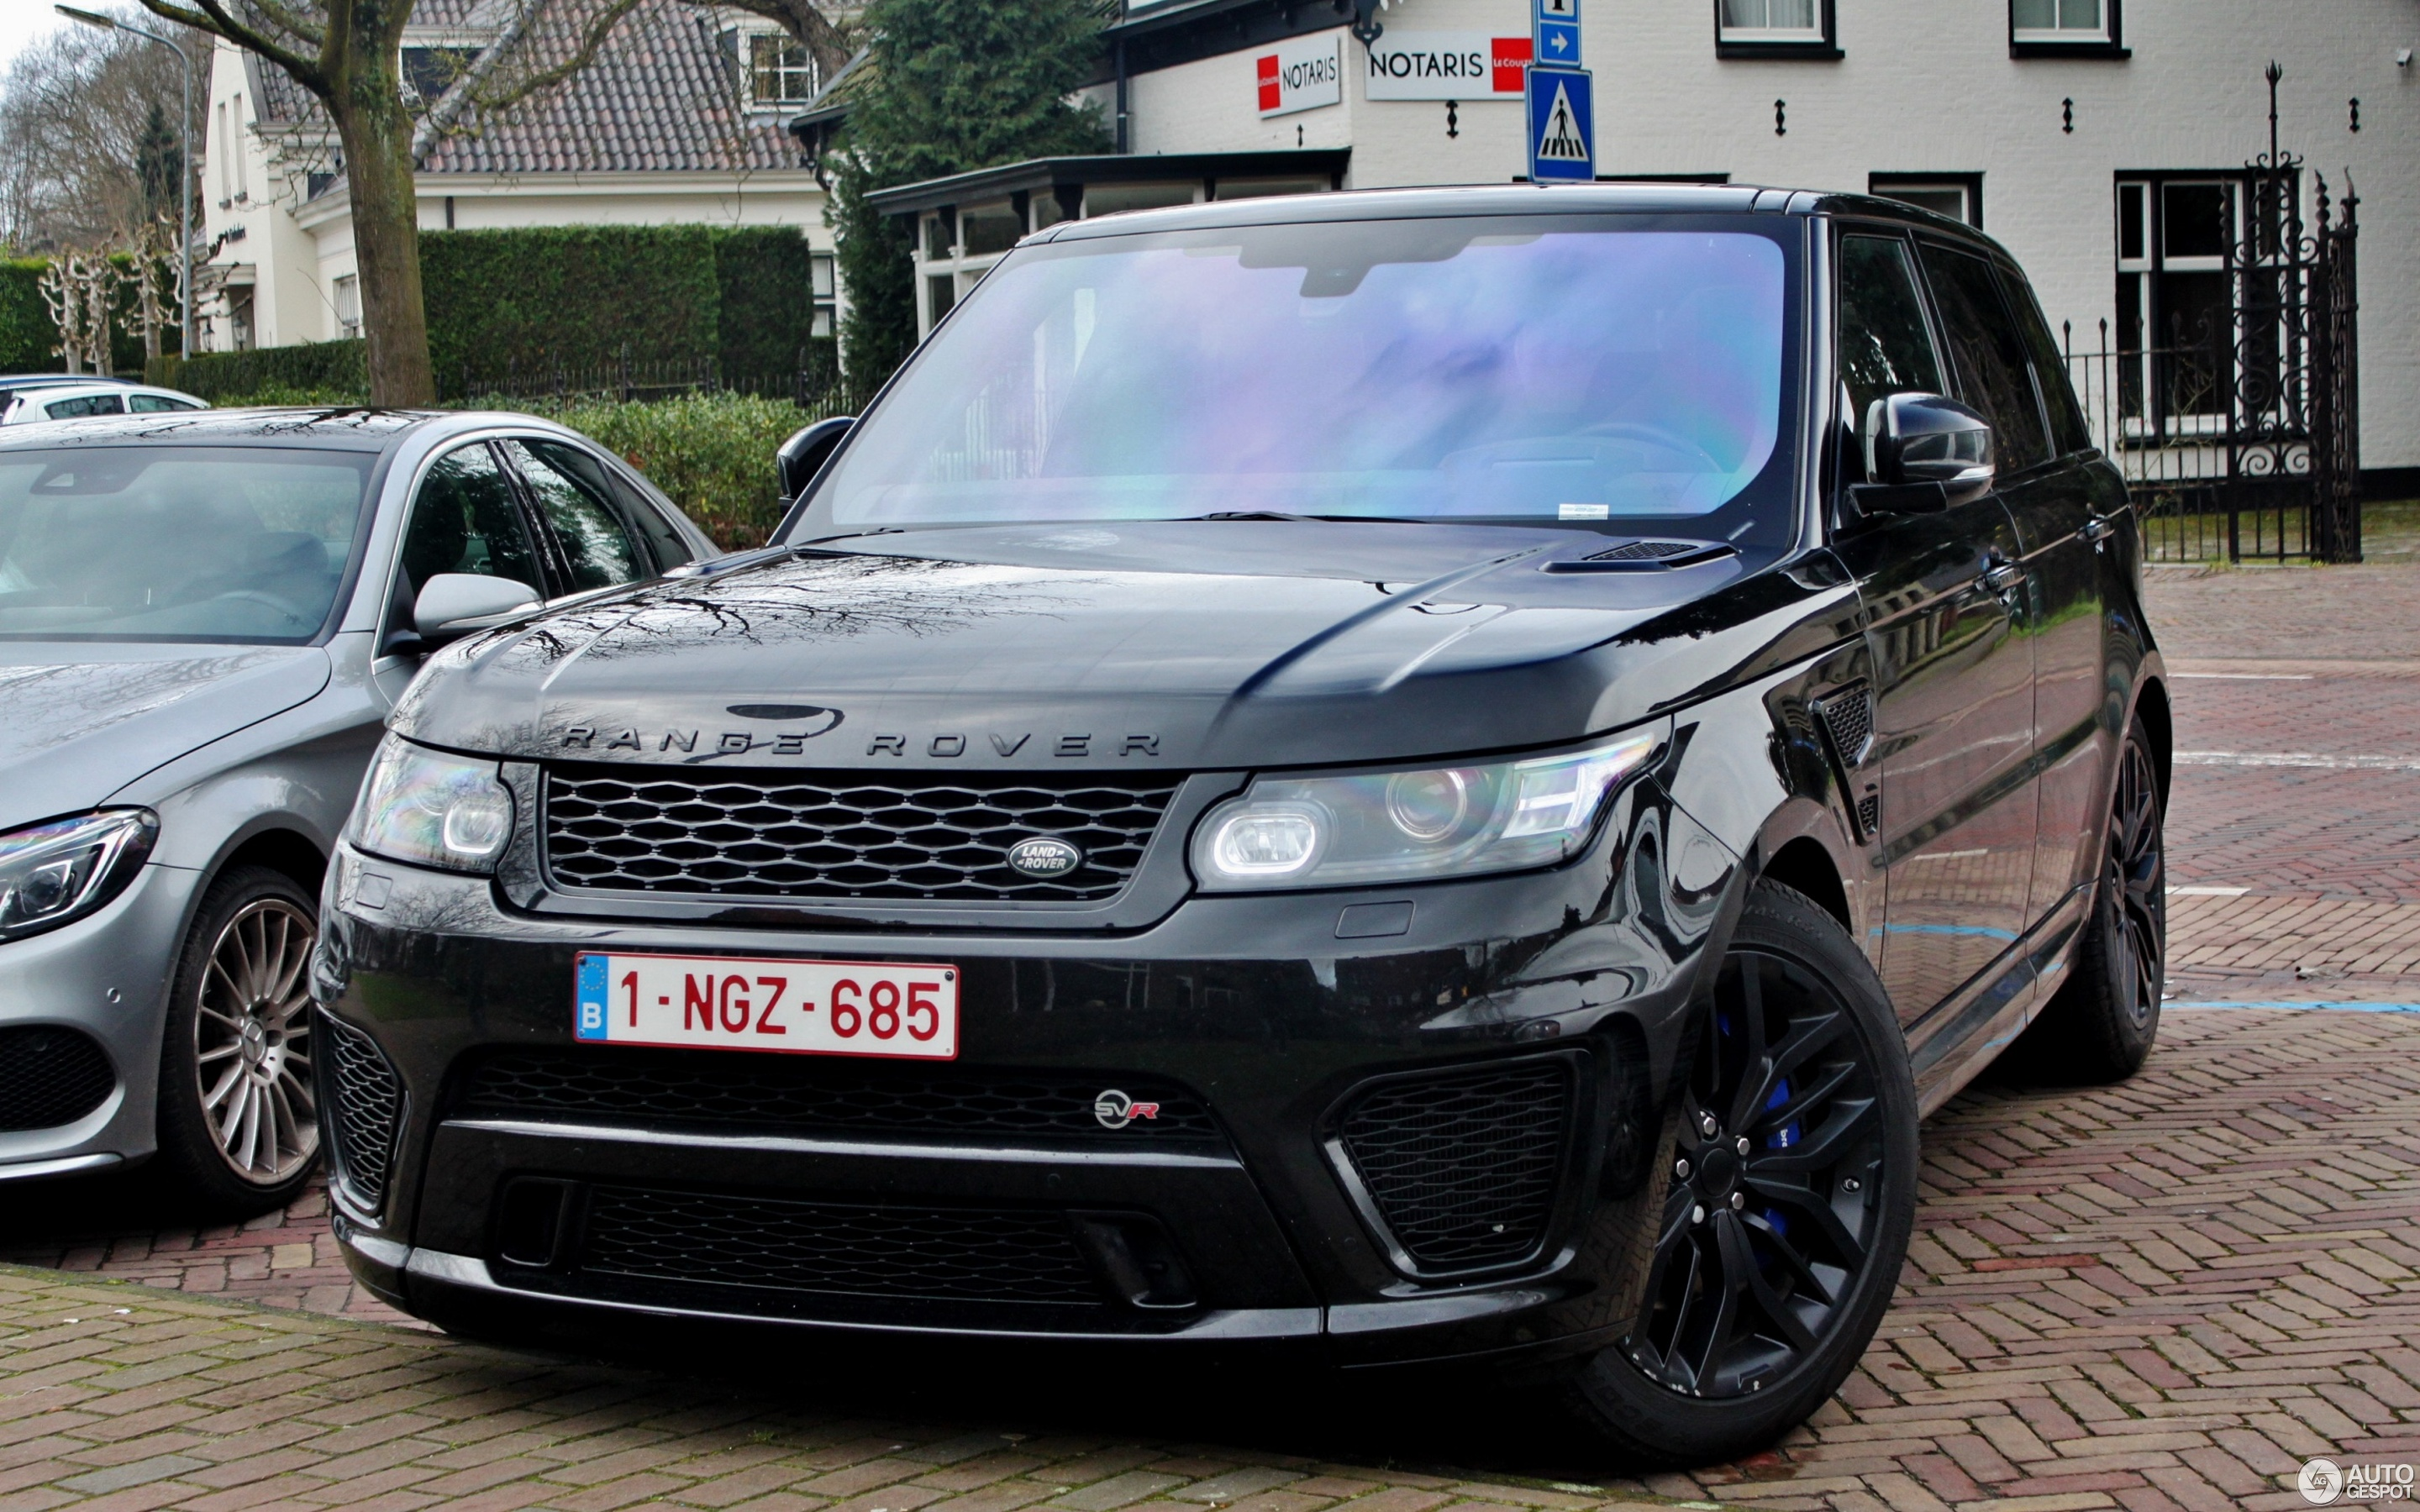 landrover pic discovery rover overview land cars cargurus cheap